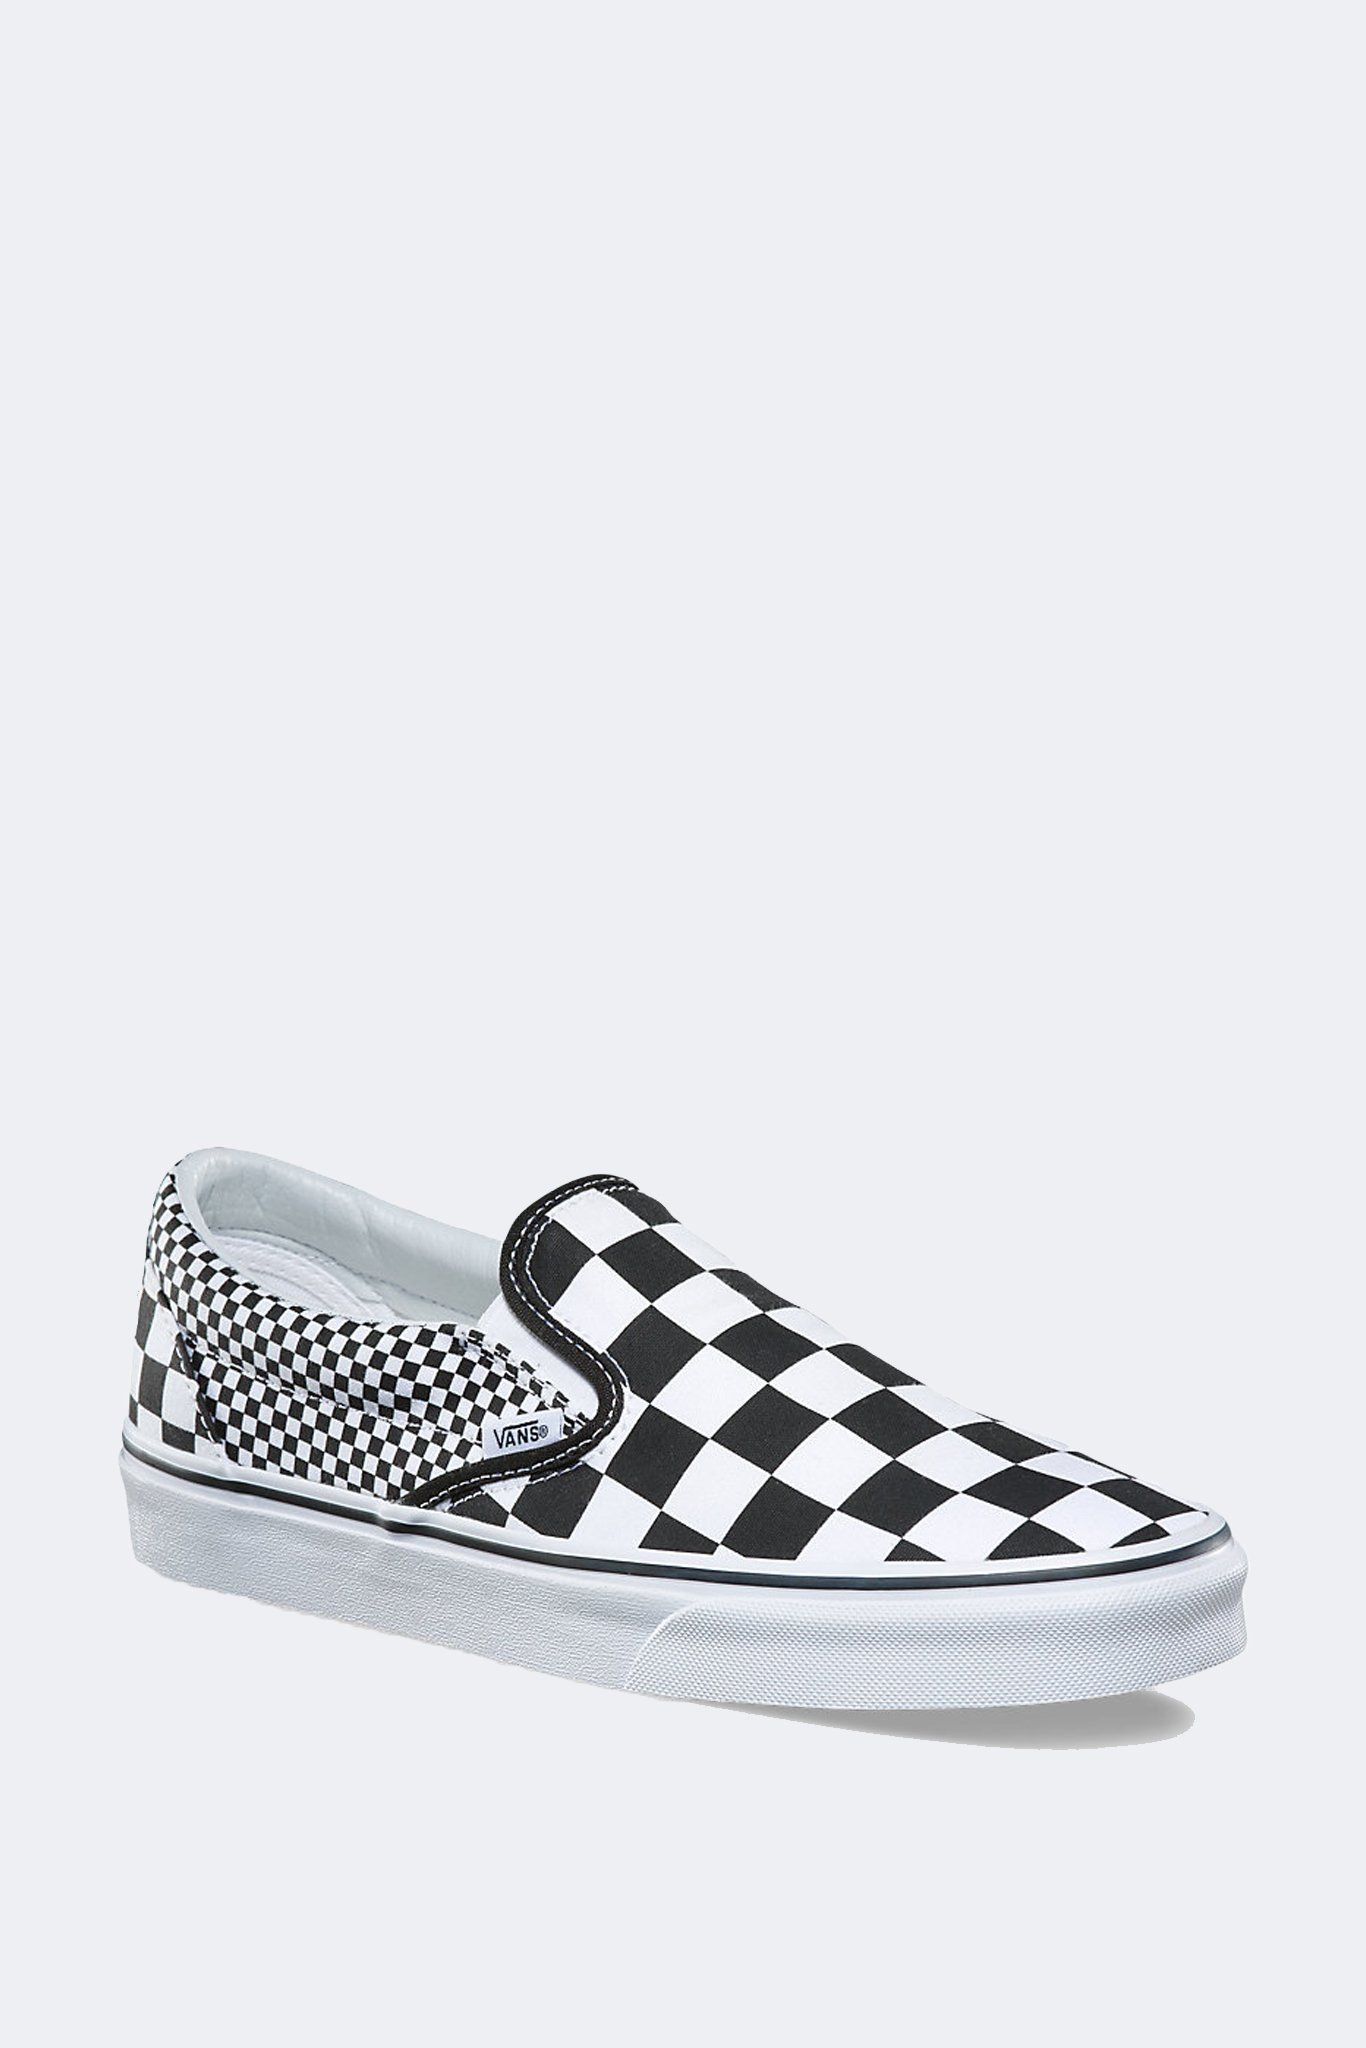 In Slip From Classic On VansSturdy Vans Checker Low Mix 4RLq3j5A